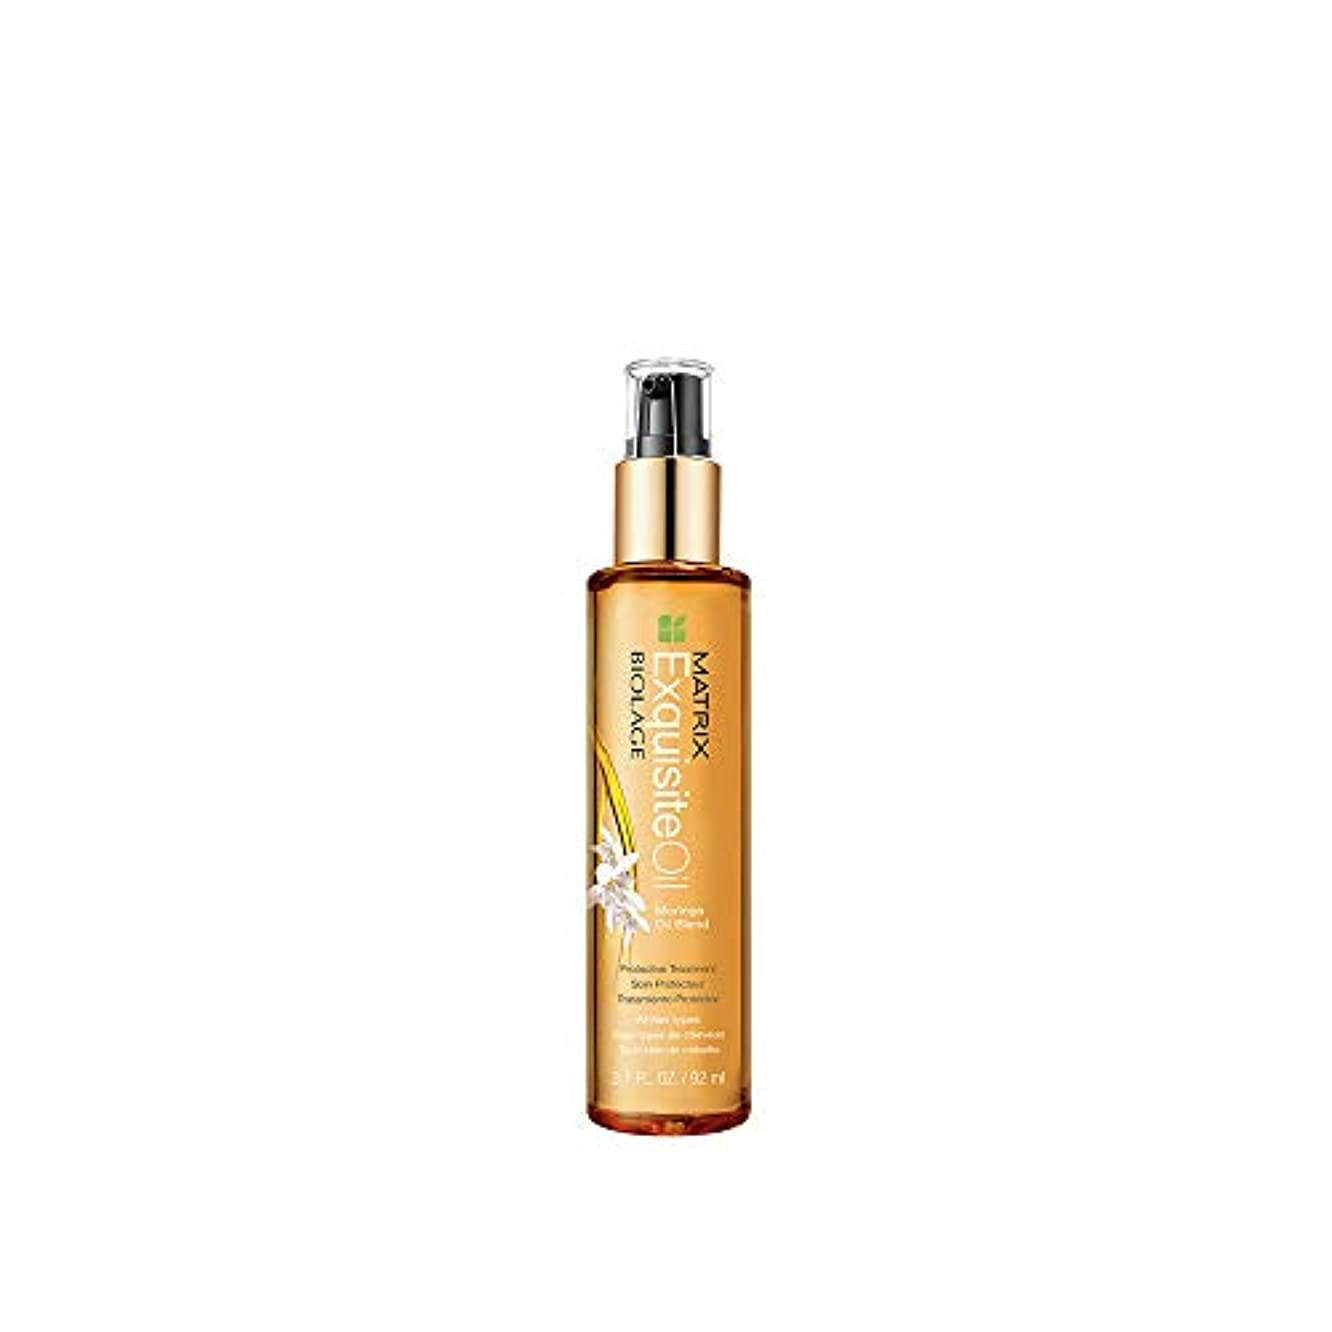 Biolage Exquisite Oil Replenishing Treatment 90 ml (並行輸入品)